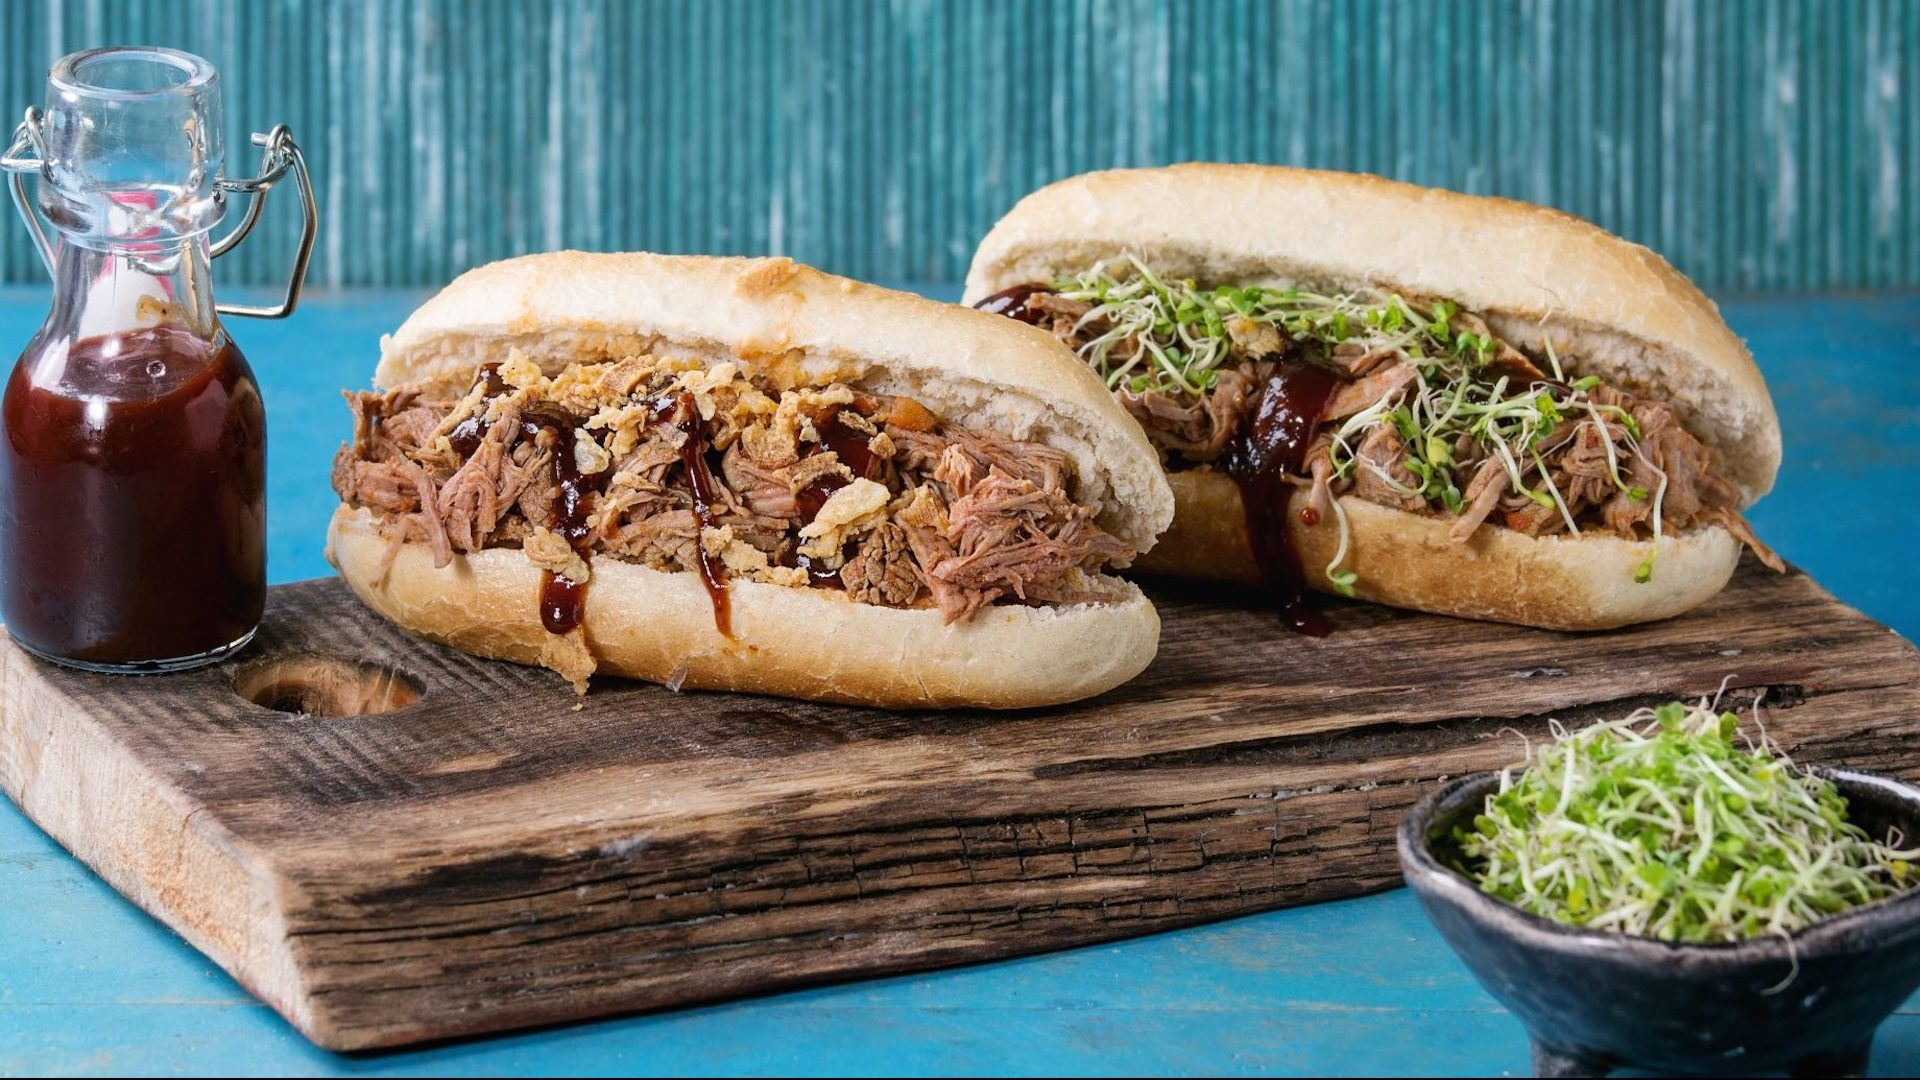 Hot dog de pulled pork - Productos Quinta Gama para Alta Cocina - foodVAC